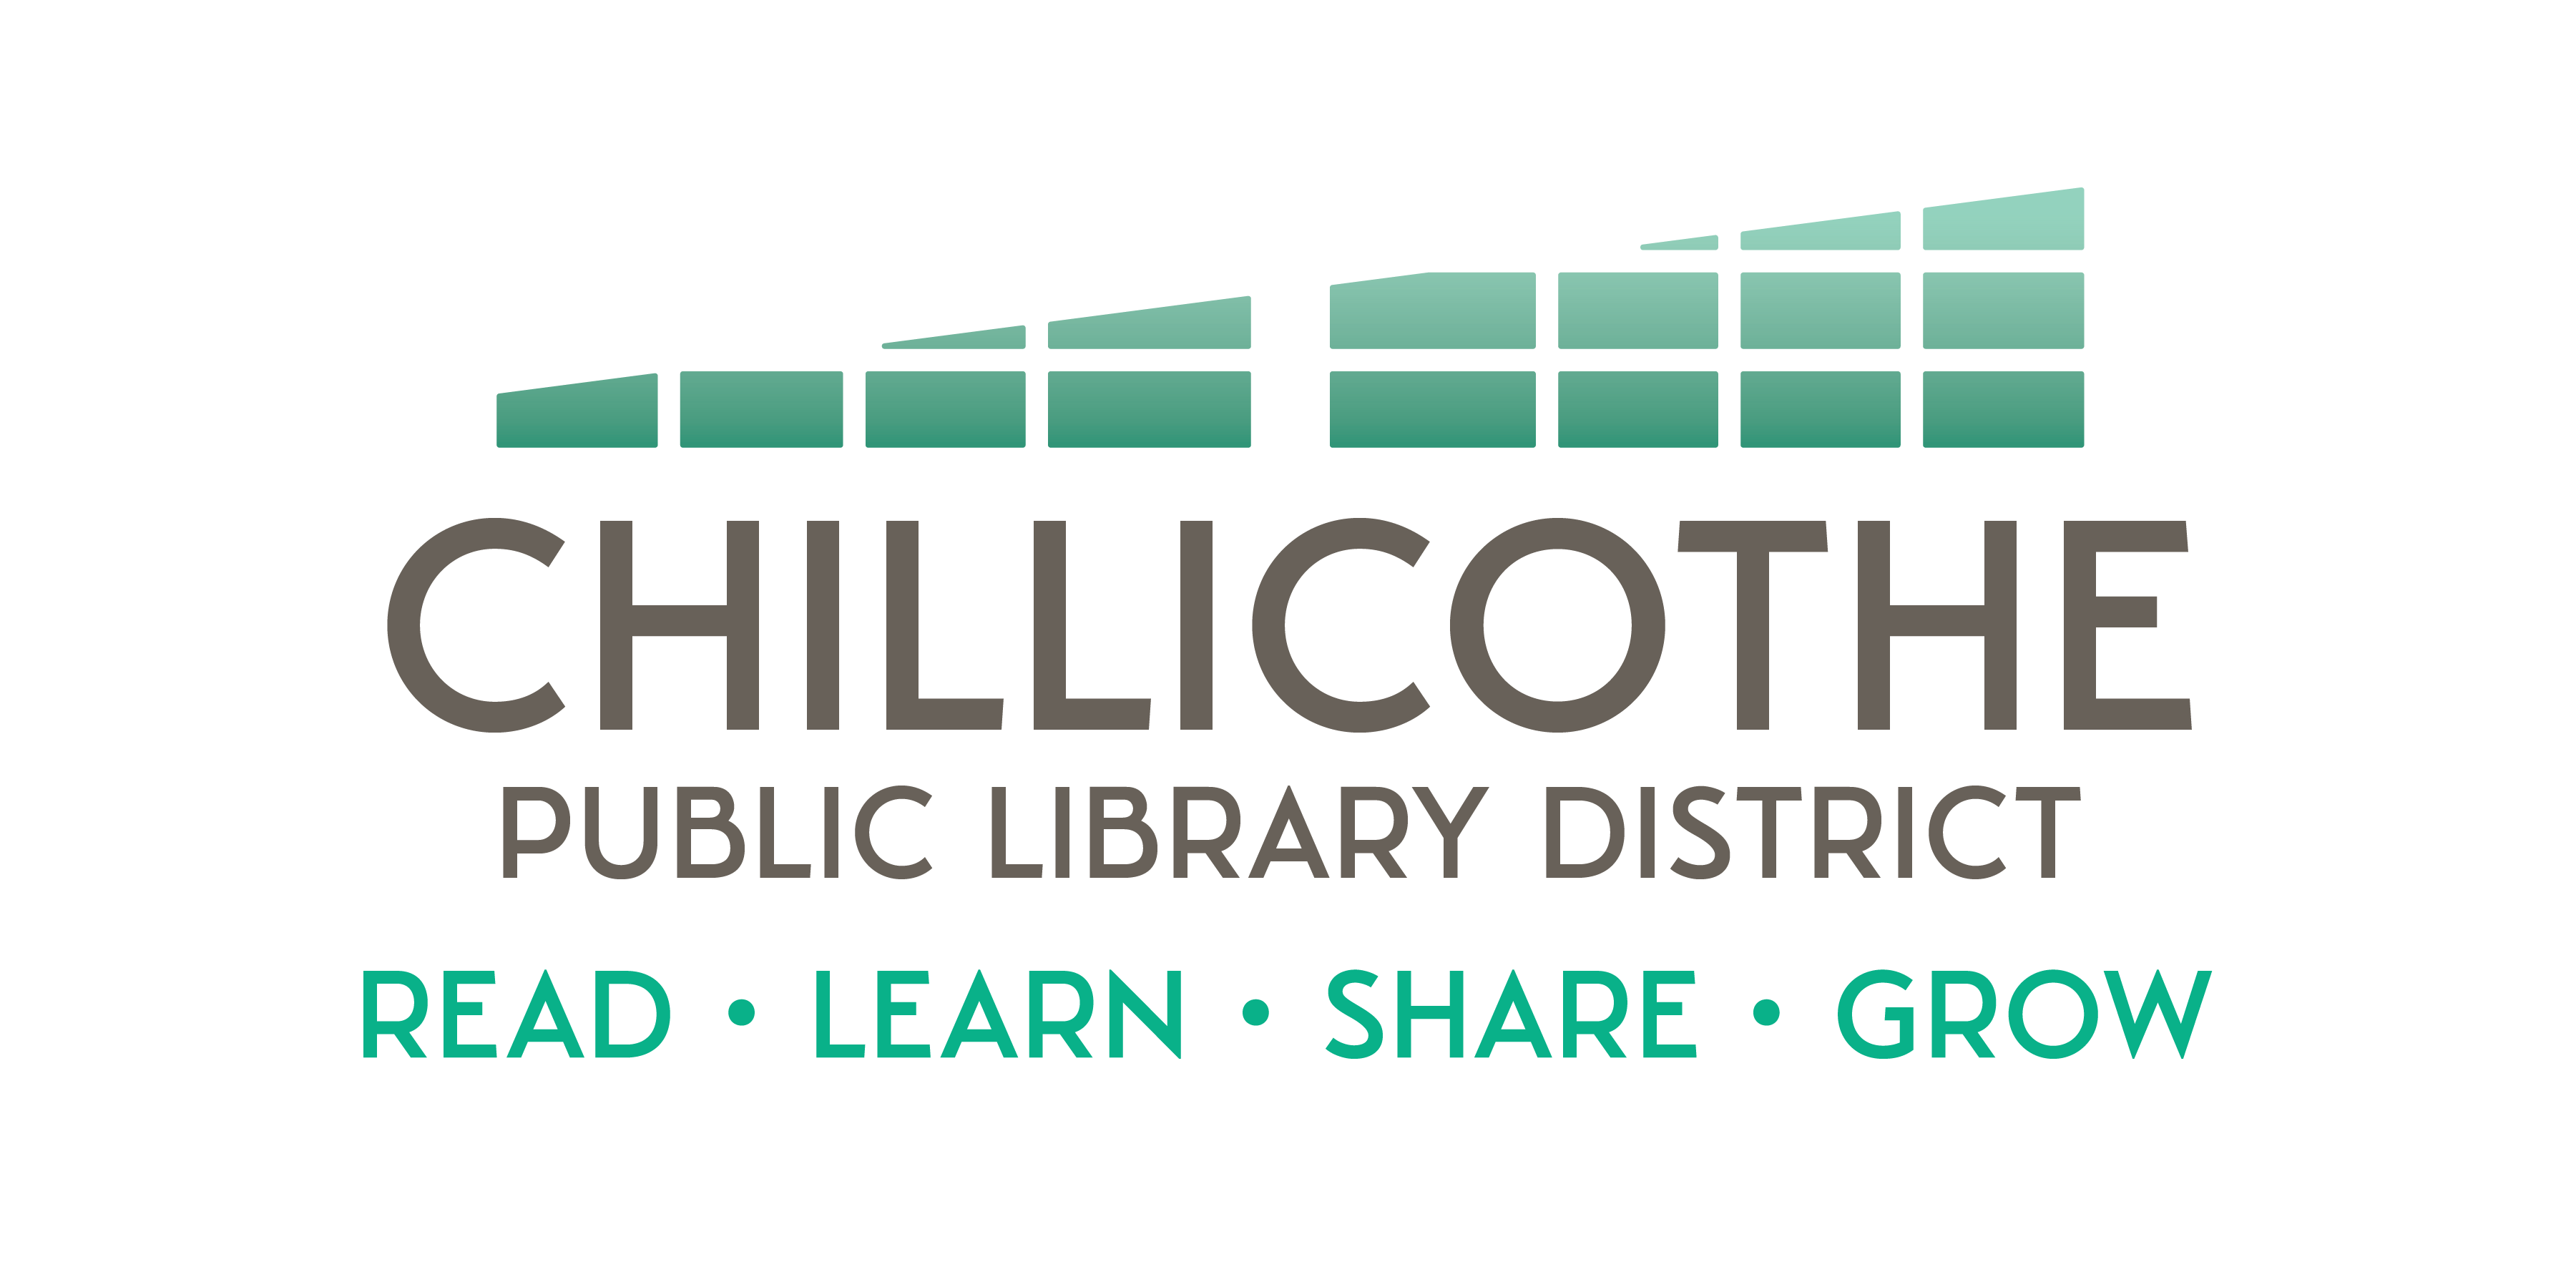 Chillicothe Public Library